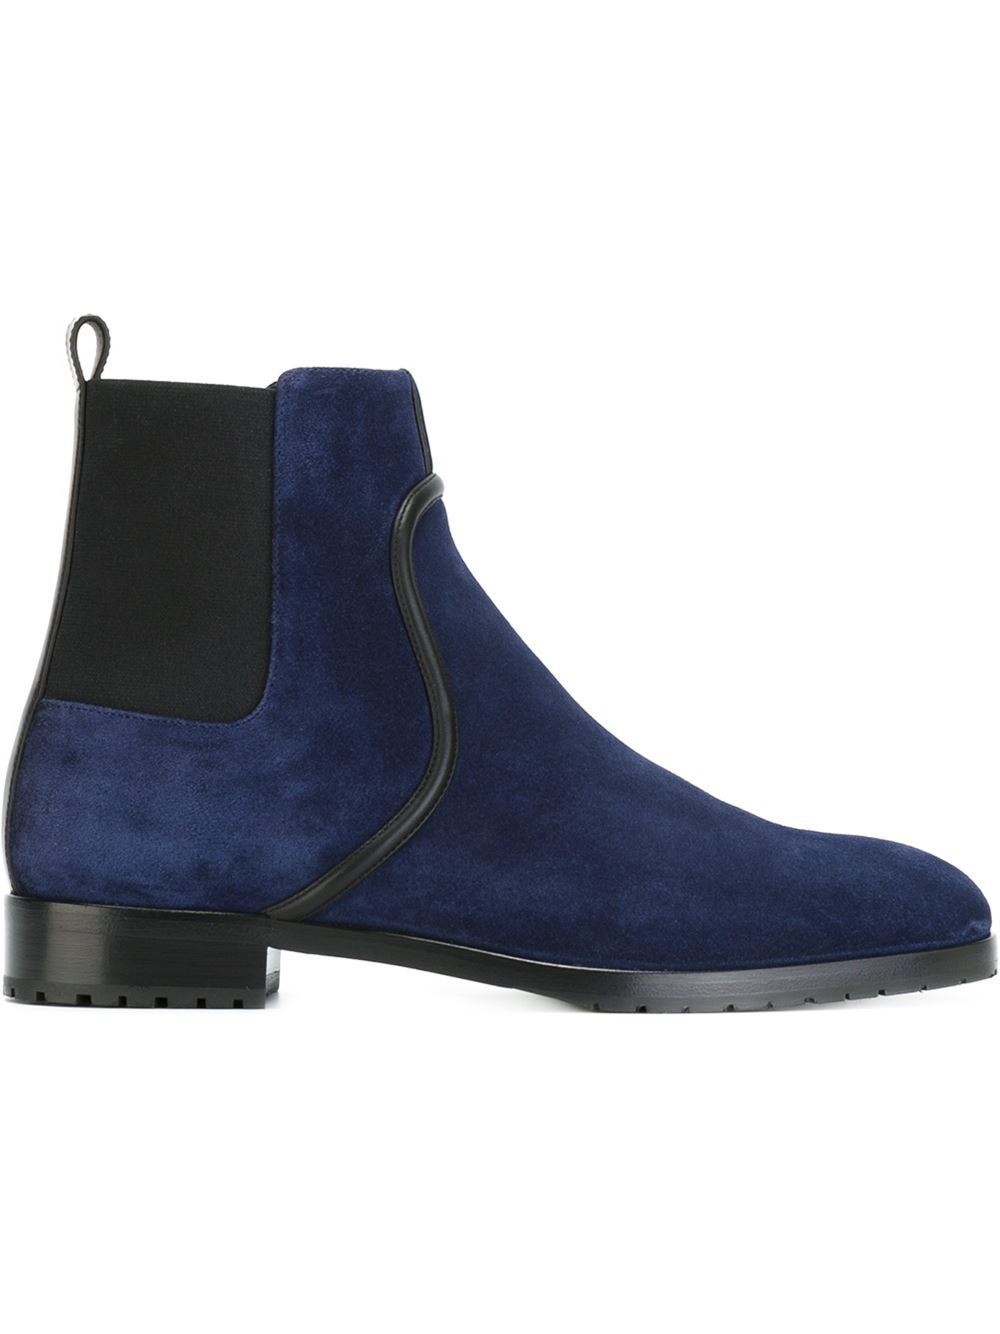 Sergio Rossi Nubuck-Leather Chelsea Boots in Blue